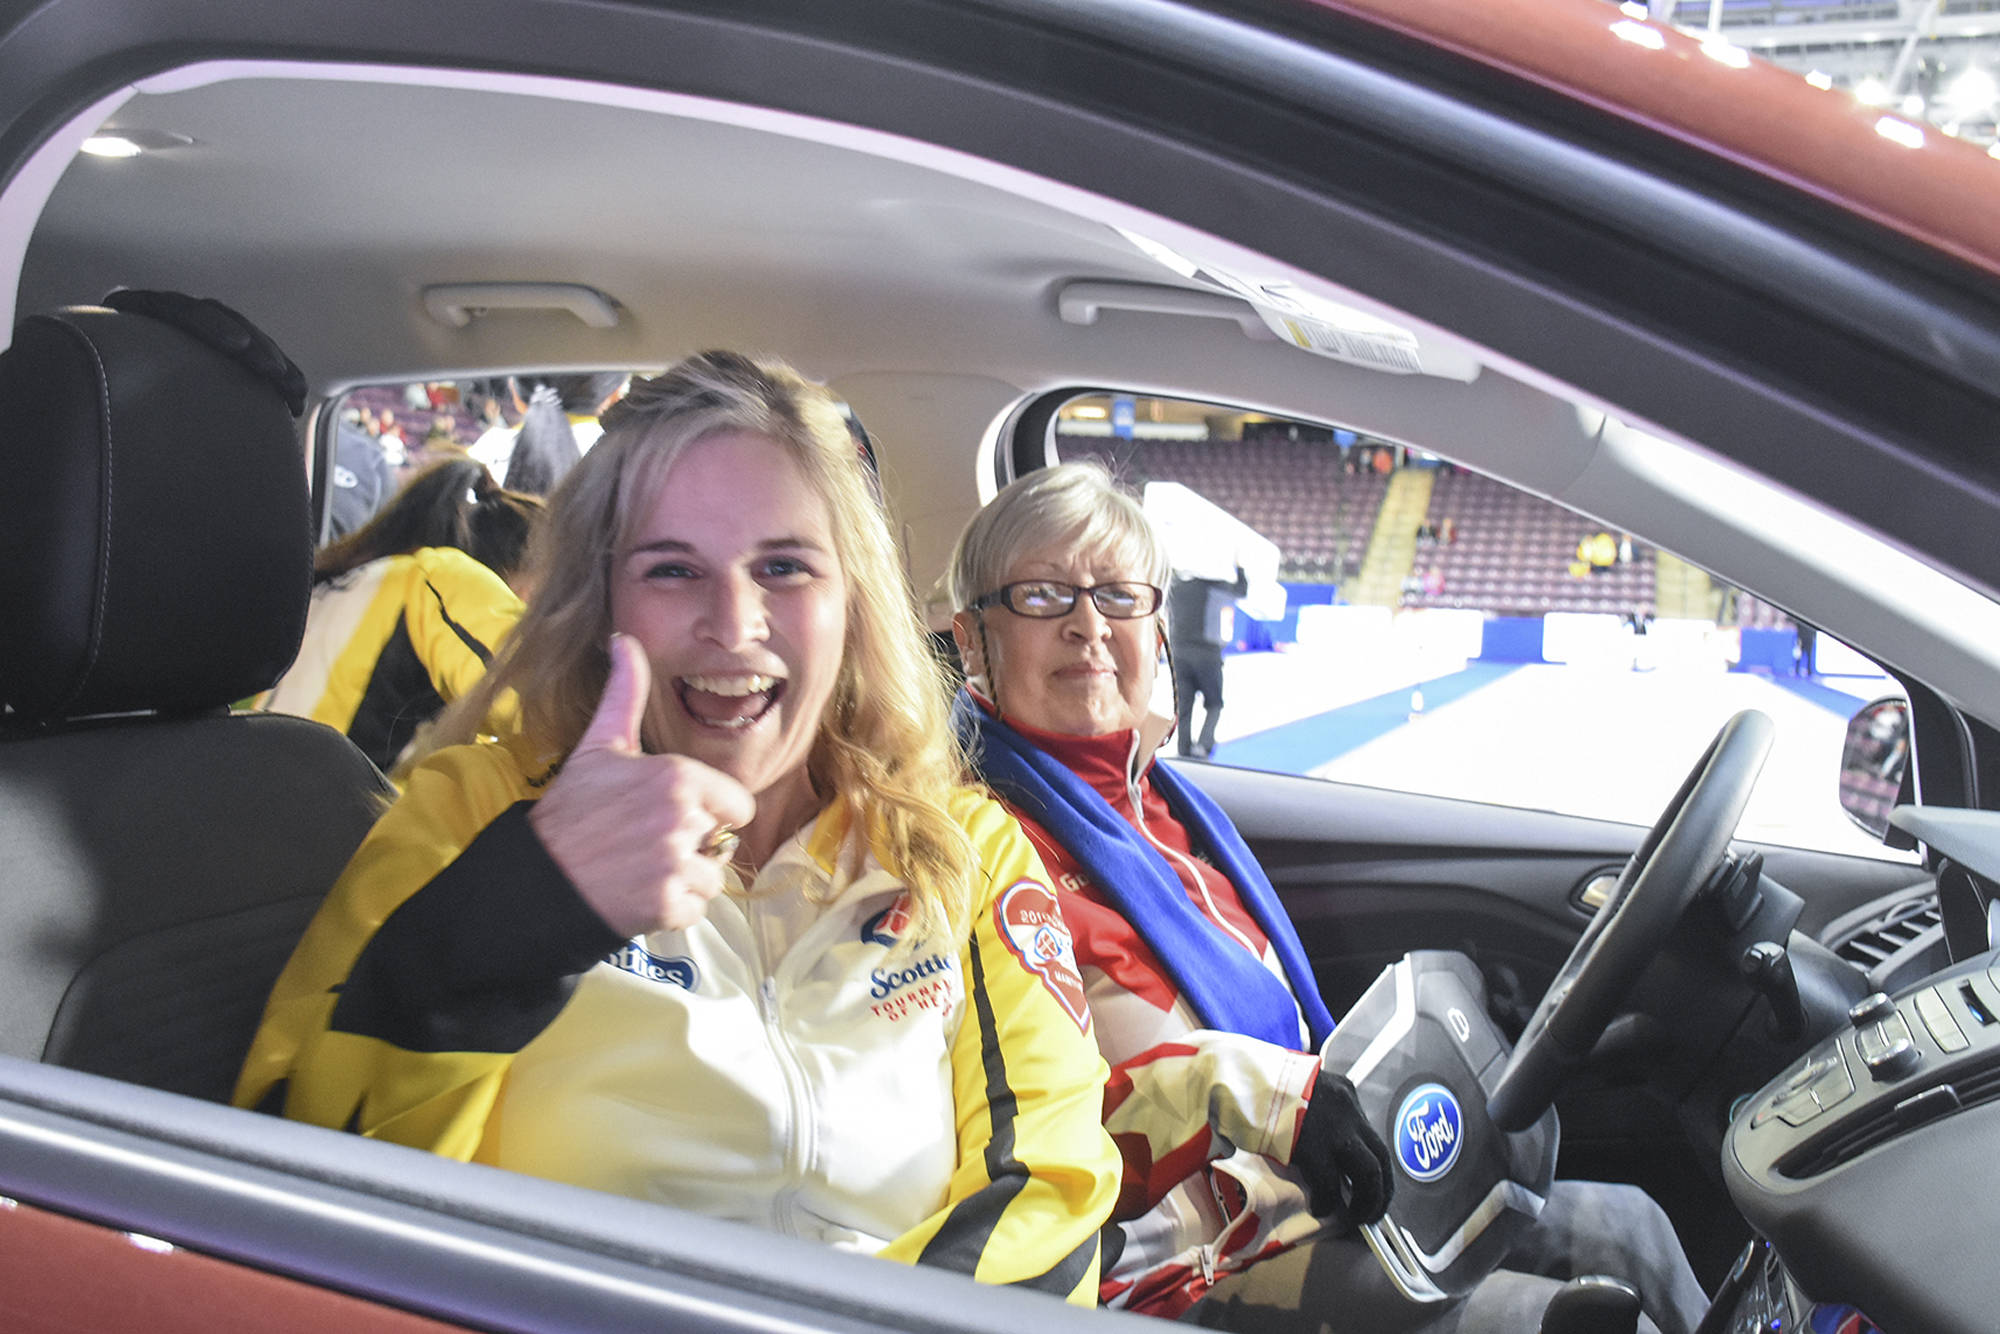 Jennifer Jones gives the thumbs up after winning the Ford Hot Rocks event that earned her team $15,000 and Penticton's Arlene Kolundzic a two-year lease on a Ford Escape SE.                                Mark Brett/Western News